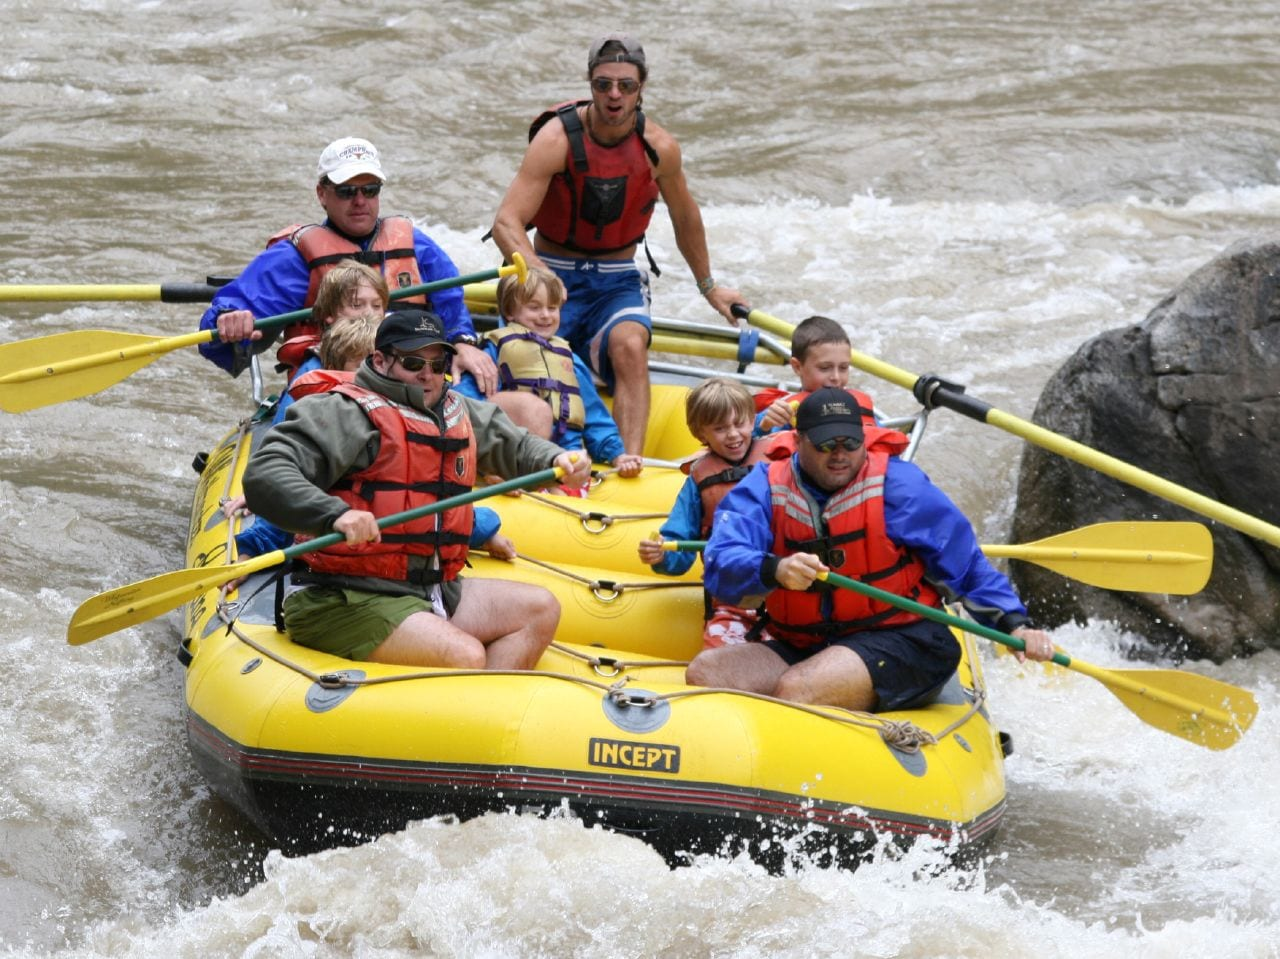 Whitewater rafting, CO